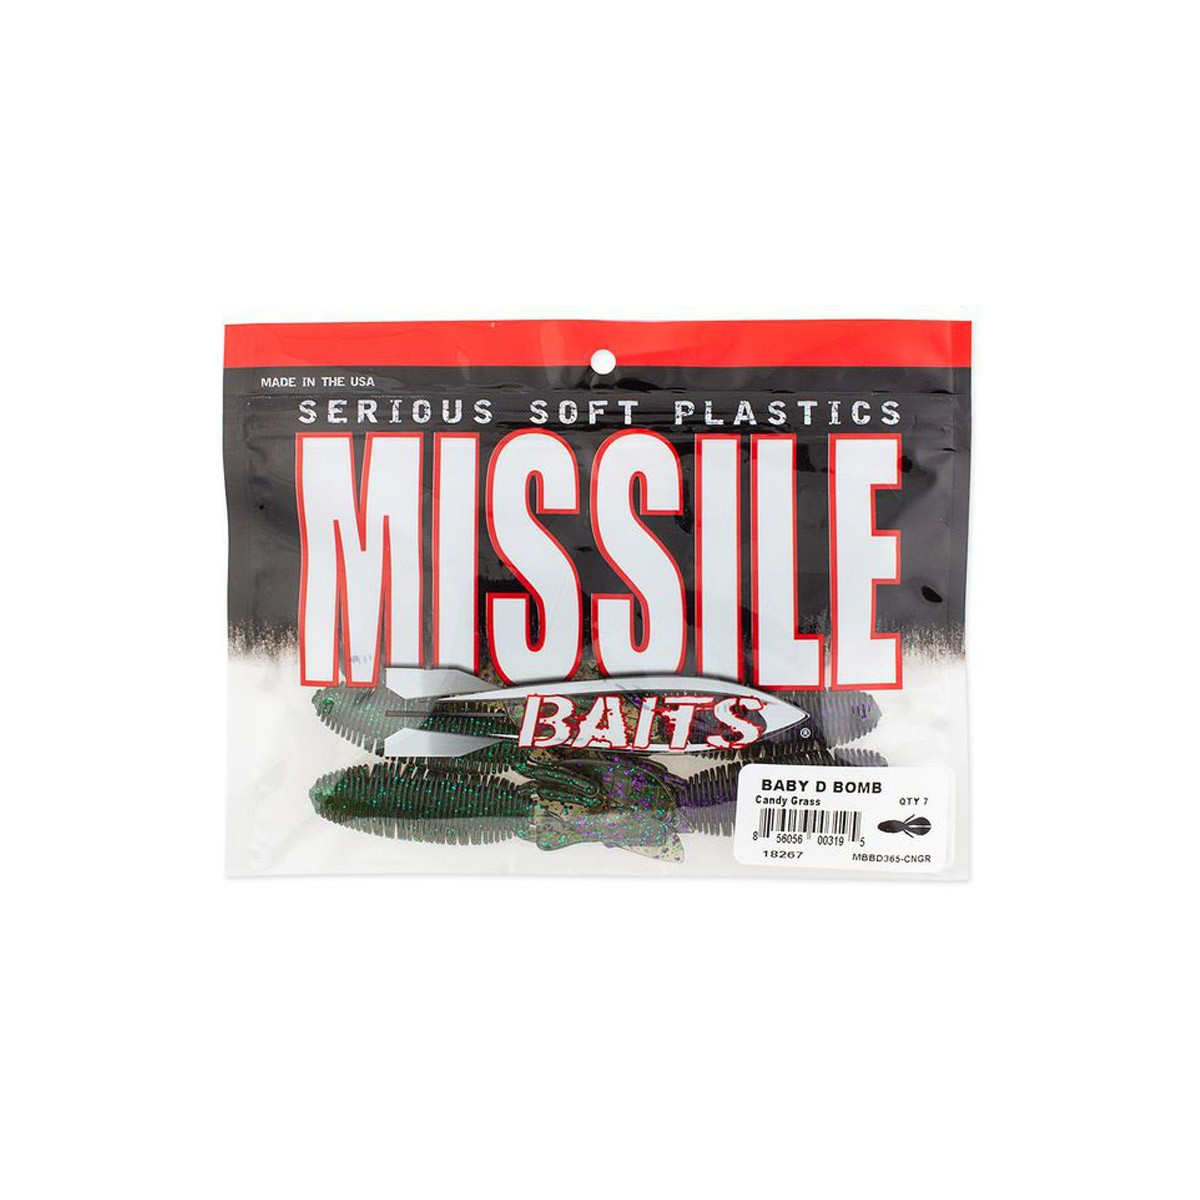 Missile baits Baby D Bomb 3,65 Inch